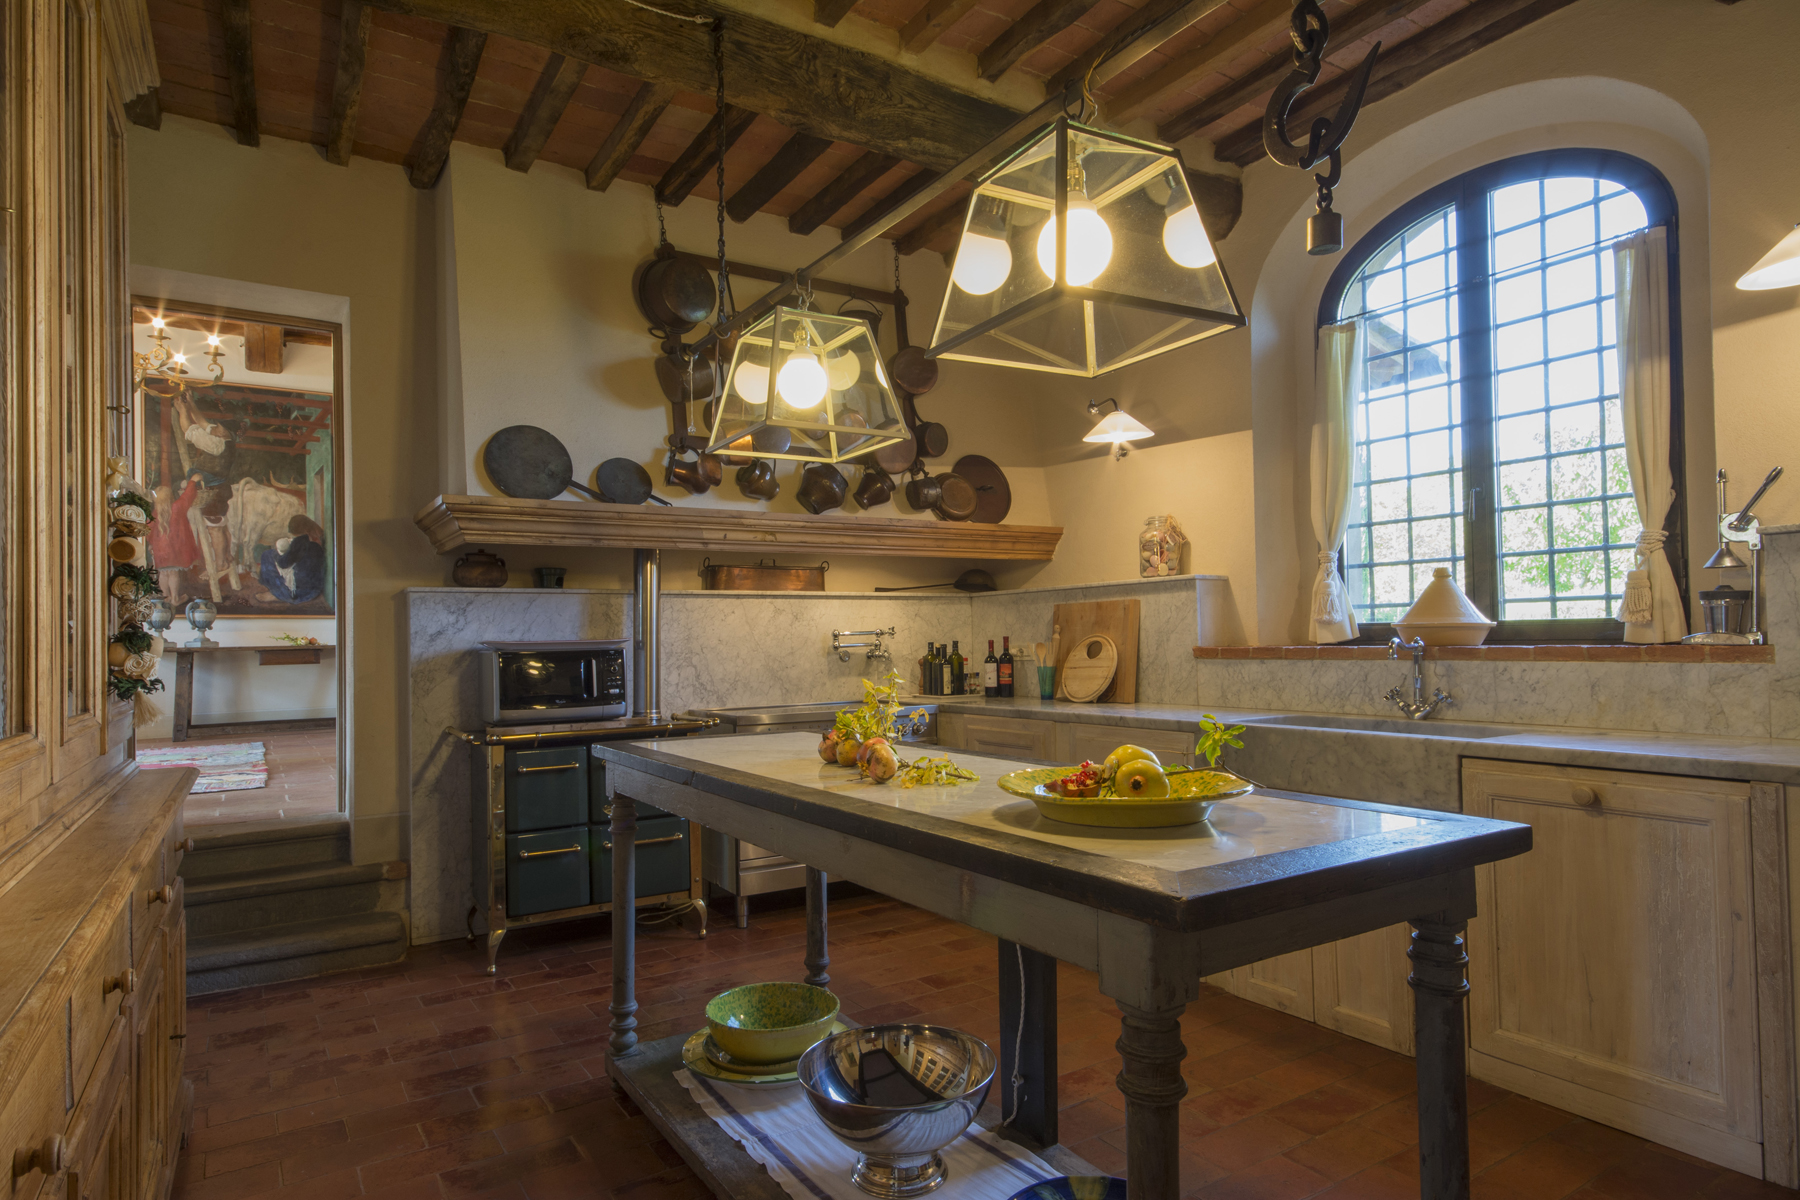 Additional photo for property listing at Magnificent villa in the Tuscan countryside Via di Valdisonzi Crespina, Pisa 56040 Italy